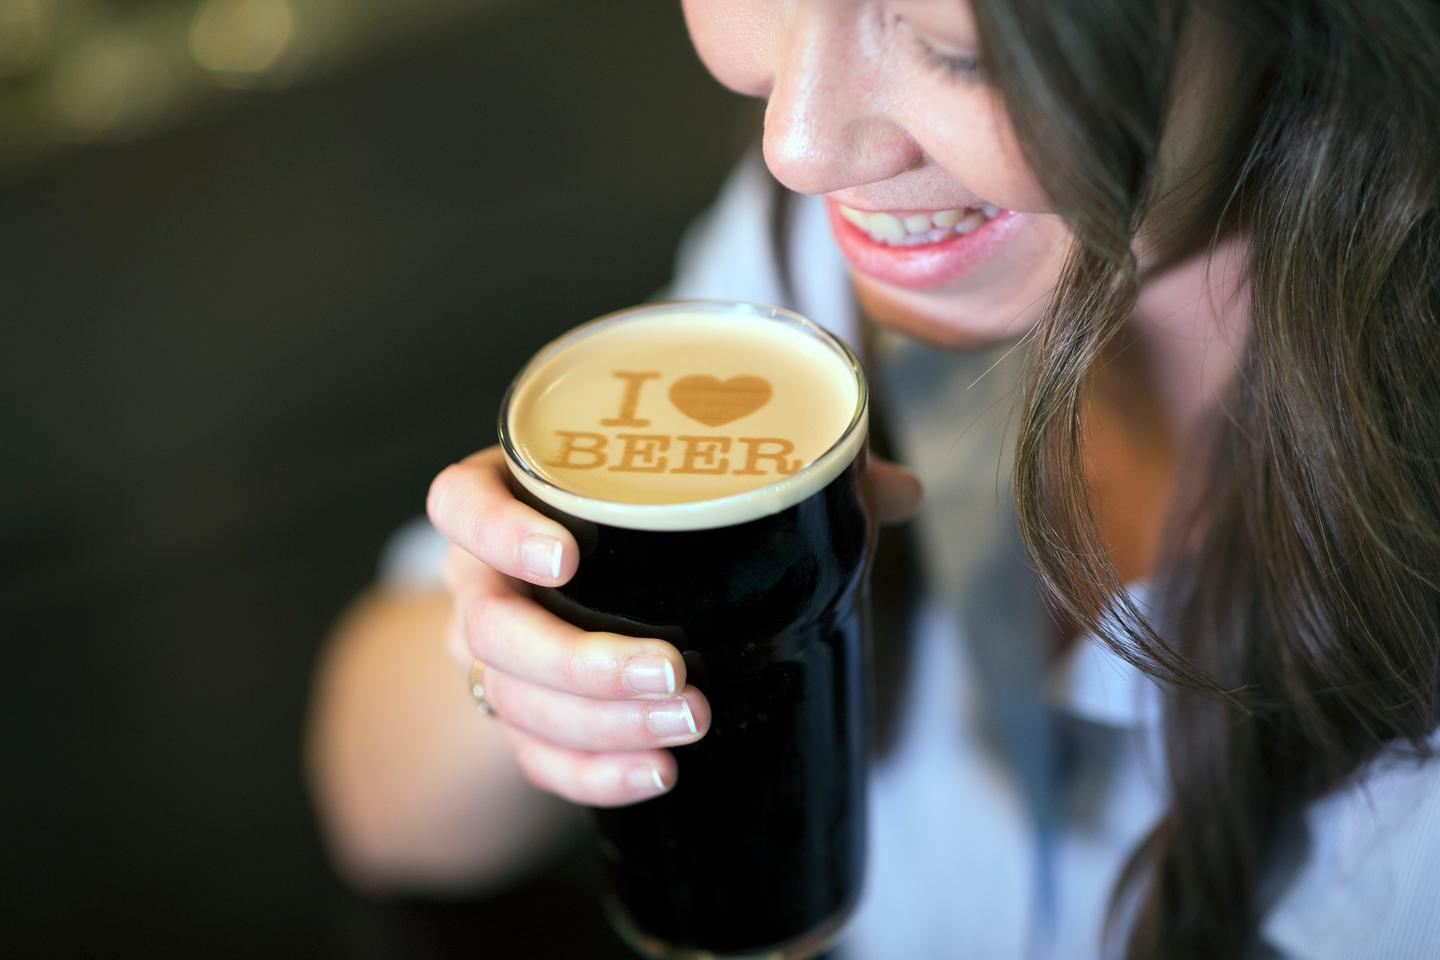 Beer Ripples prints messages and images using a malt-based ink